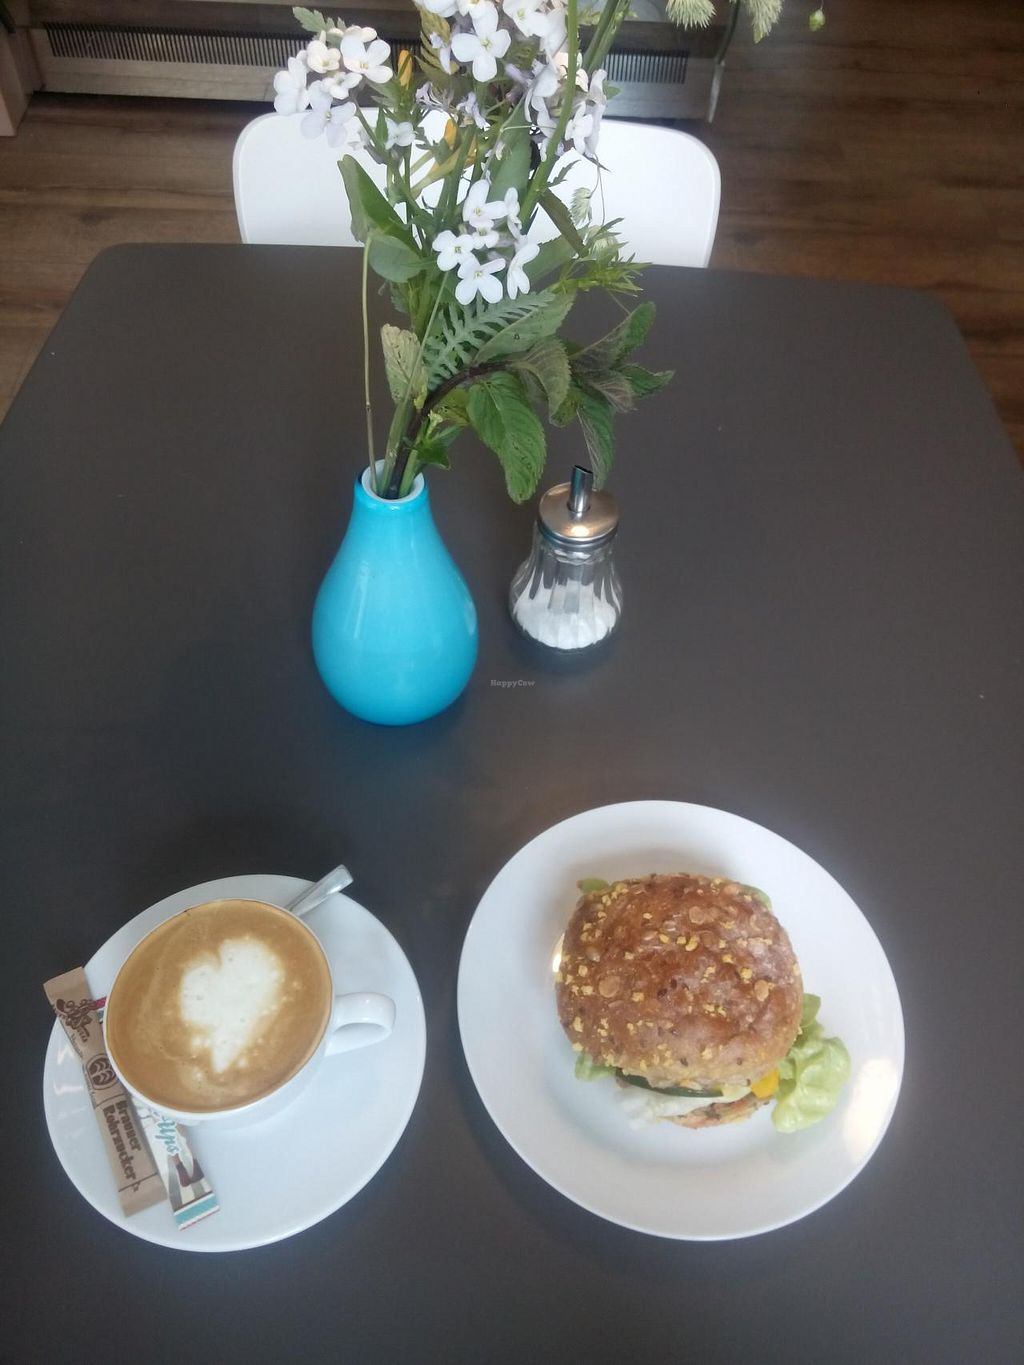 """Photo of Holy Kitchen  by <a href=""""/members/profile/SandraPauly"""">SandraPauly</a> <br/>soy cappuccino & vegan bun with grilled vegetables <br/> May 19, 2015  - <a href='/contact/abuse/image/55404/102663'>Report</a>"""